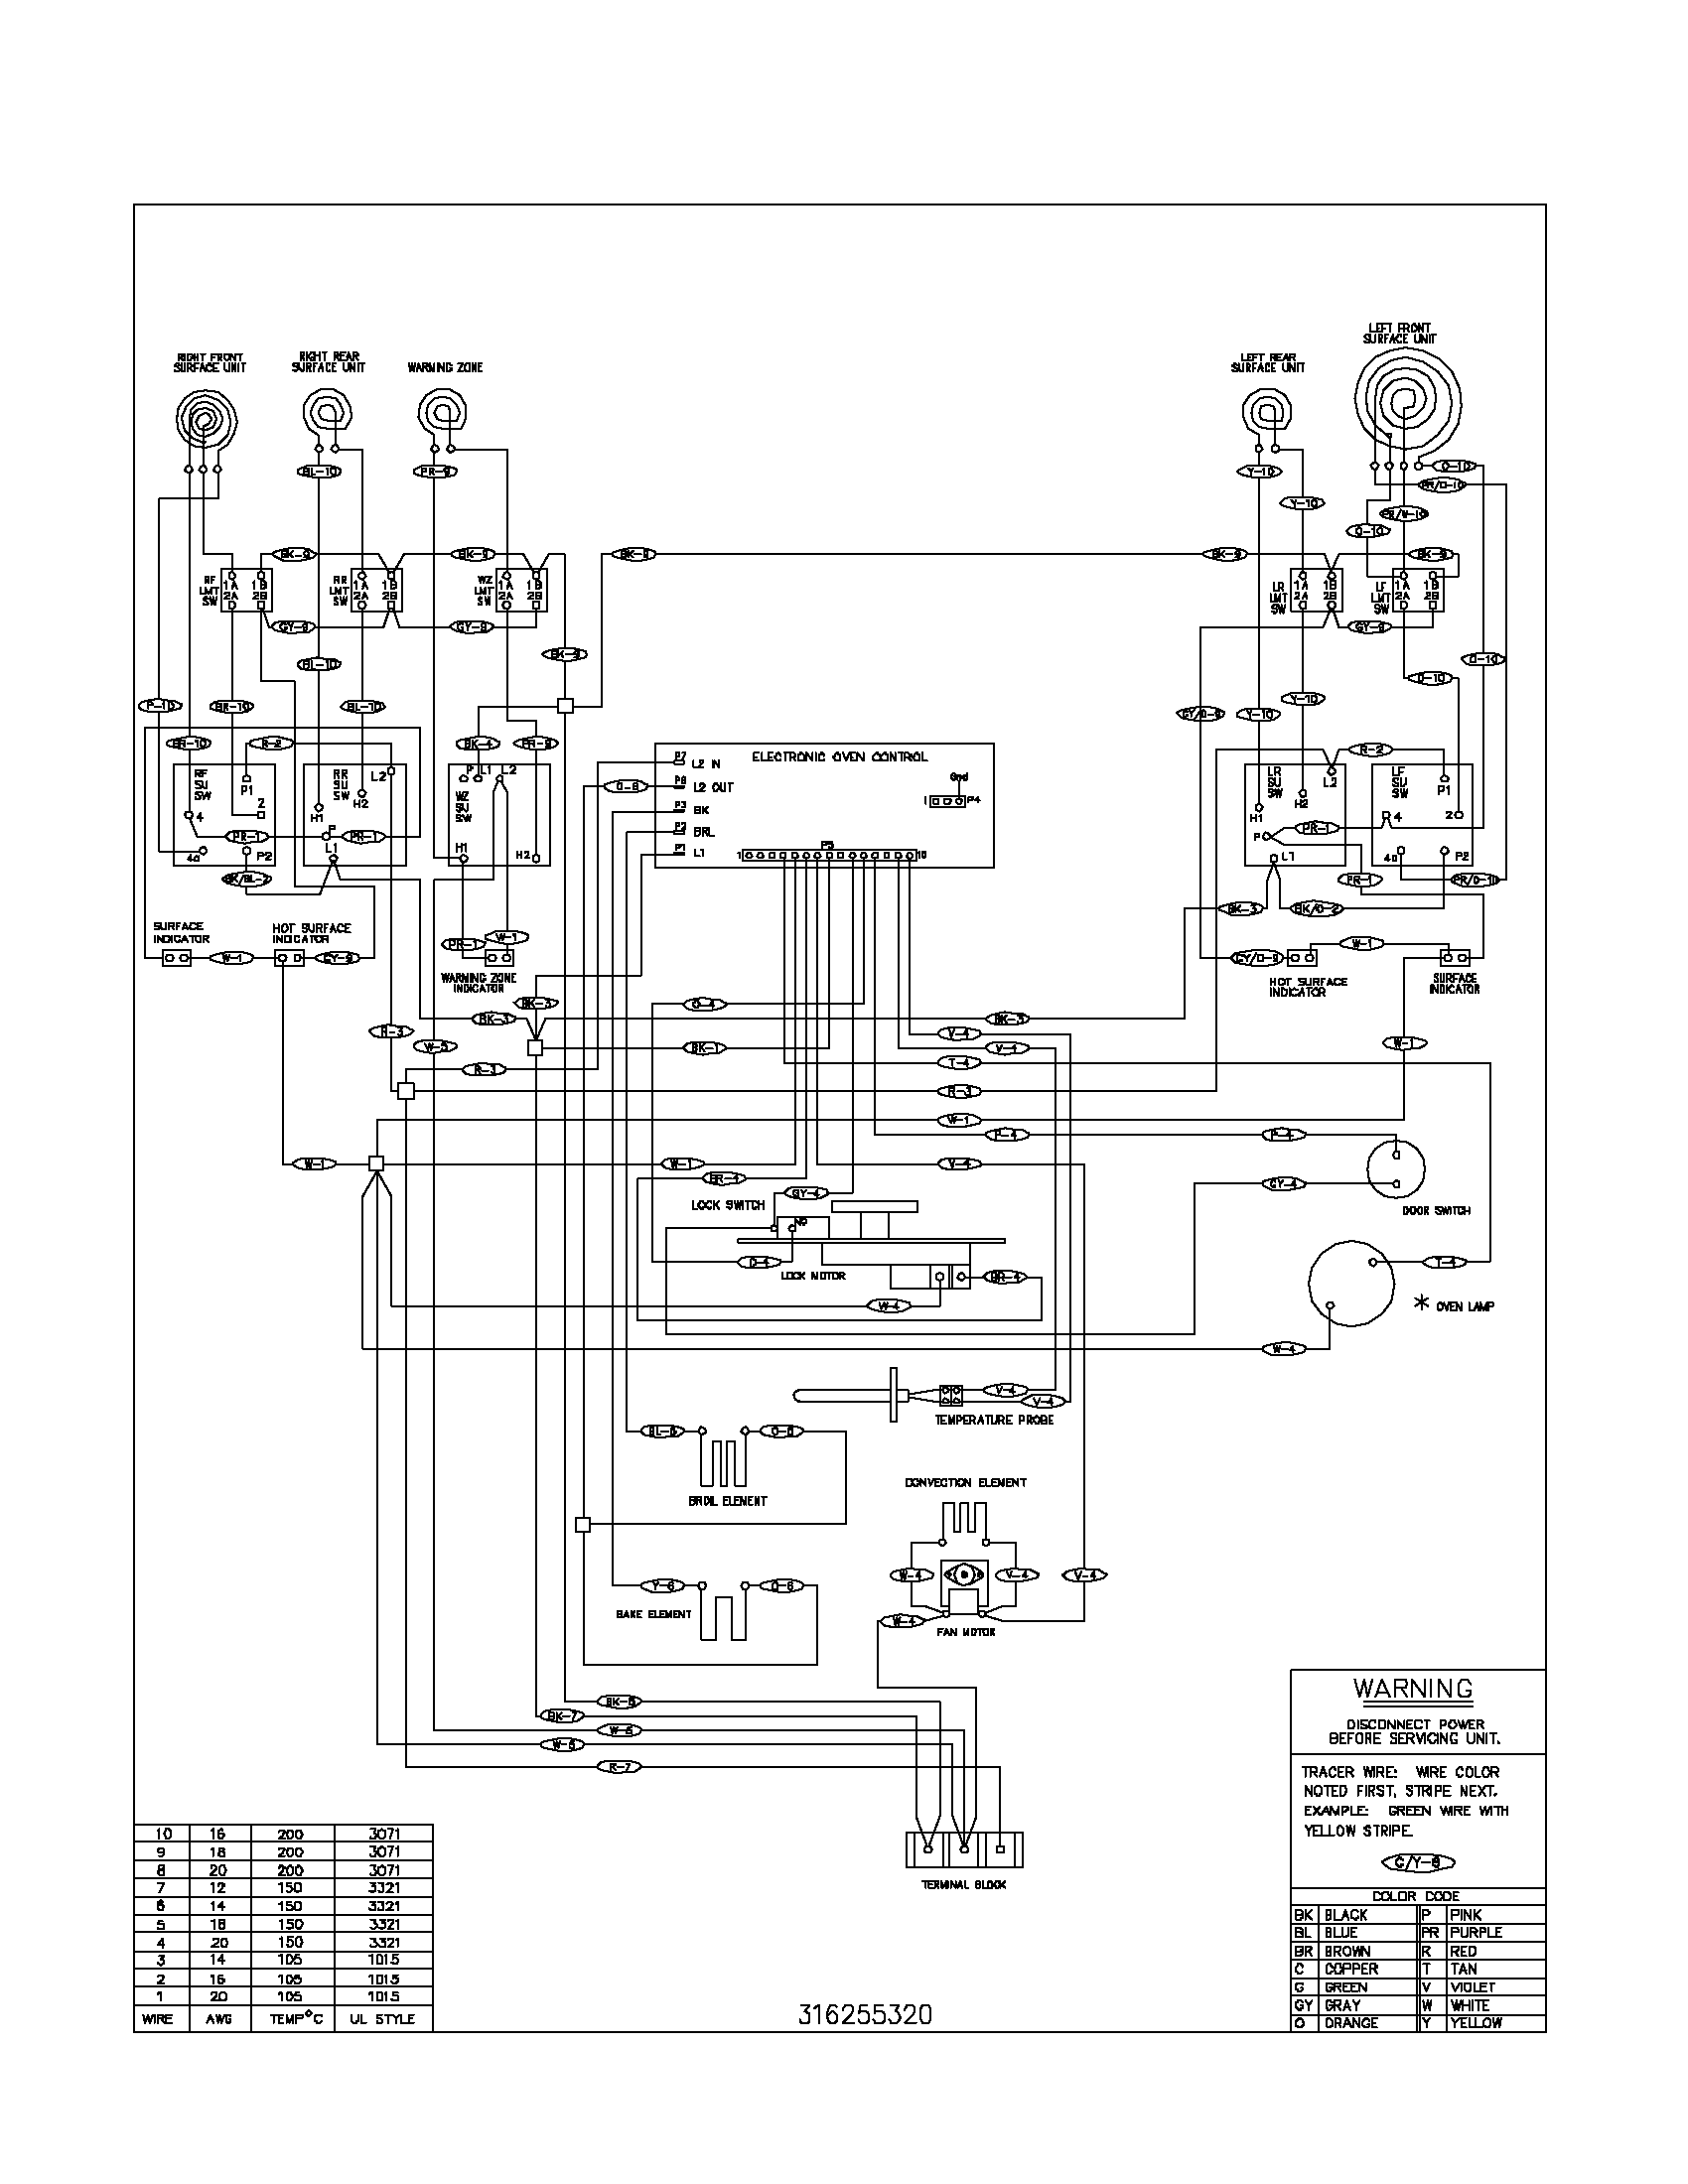 wiring diagram parts whirlpool fefl88acc electric range timer stove clocks and wiring diagram whirlpool refrigerator at gsmx.co